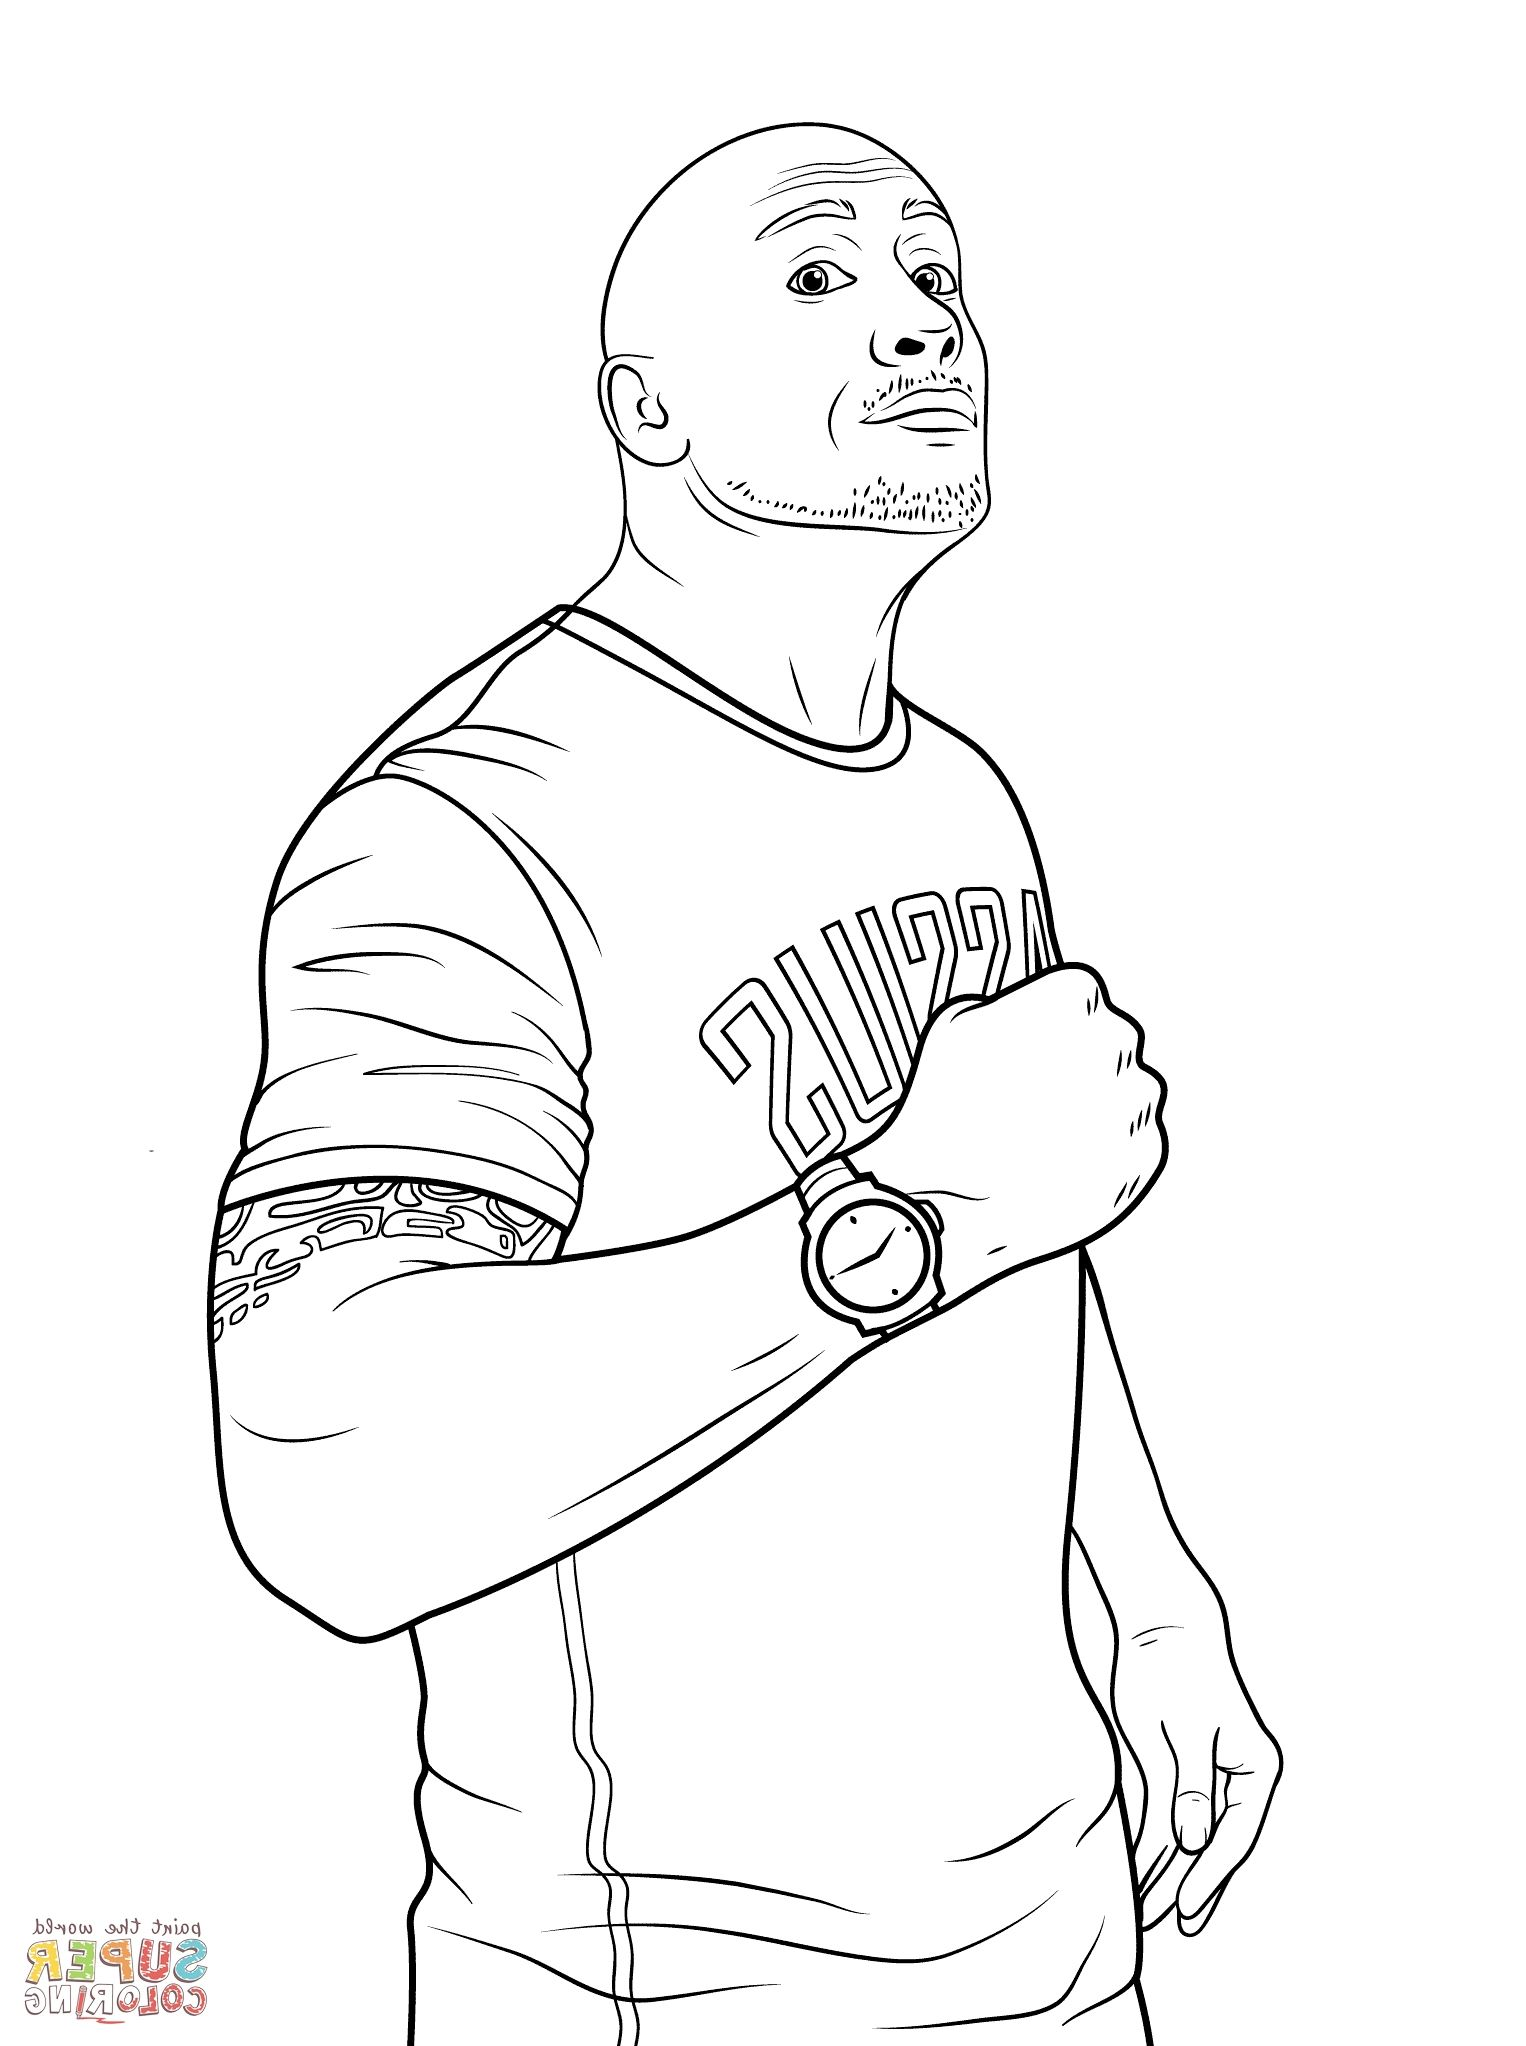 Wwe Coloring Wwe Coloring Pages Coloring Pages Sports Coloring Pages